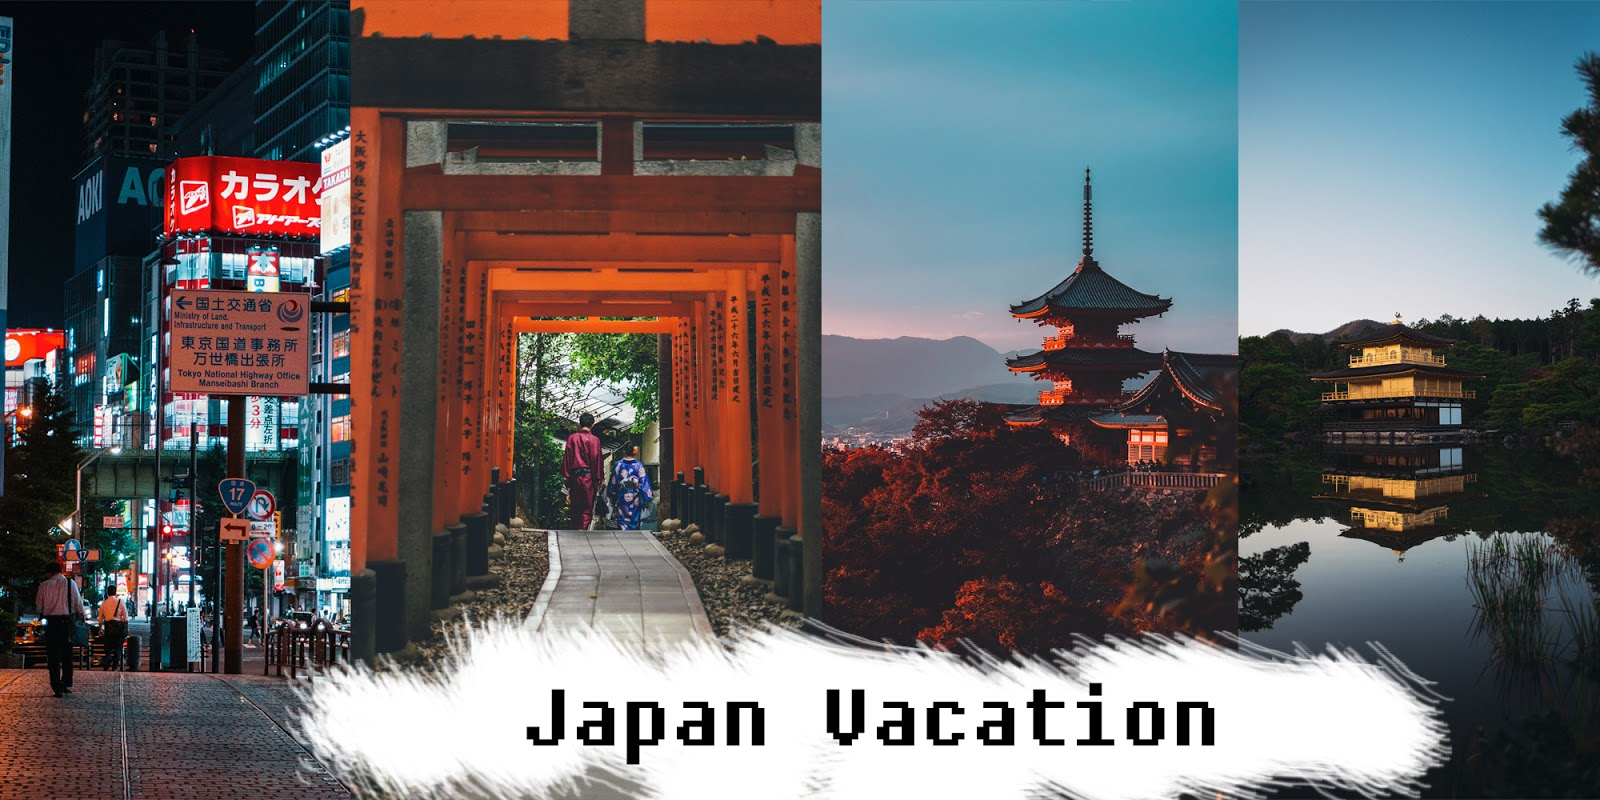 images?q=tbn:ANd9GcQh_l3eQ5xwiPy07kGEXjmjgmBKBRB7H2mRxCGhv1tFWg5c_mWT Collection of Secret Vacation Spot In Japan This Year Details @capturingmomentsphotography.net